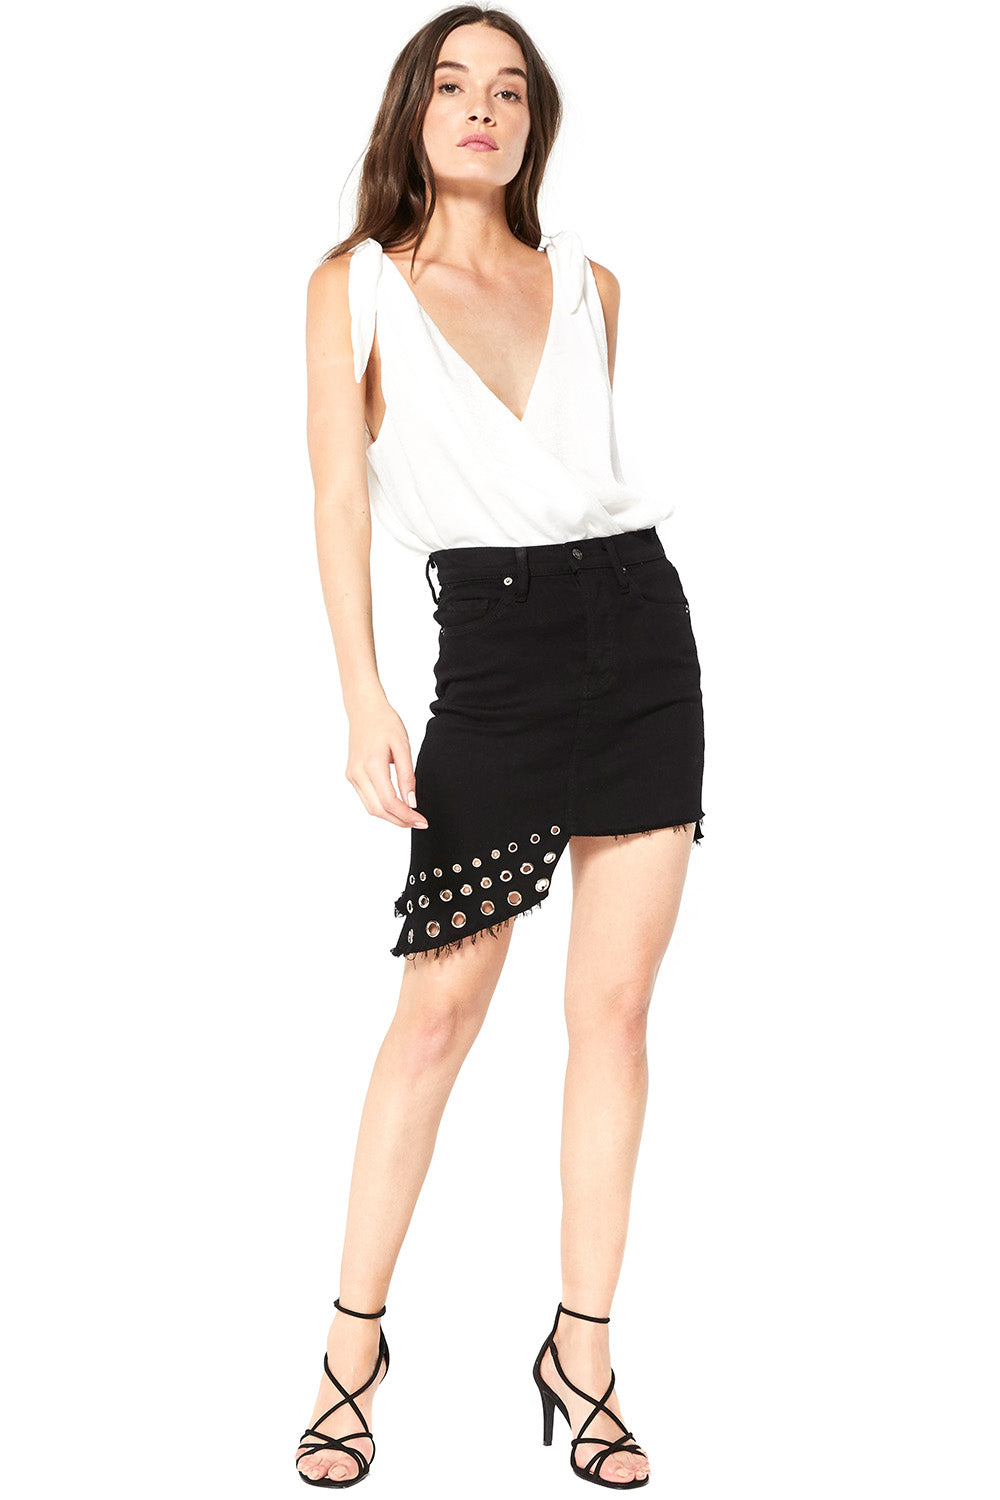 Superstar Asymmetrical Denim Mini-Skirt